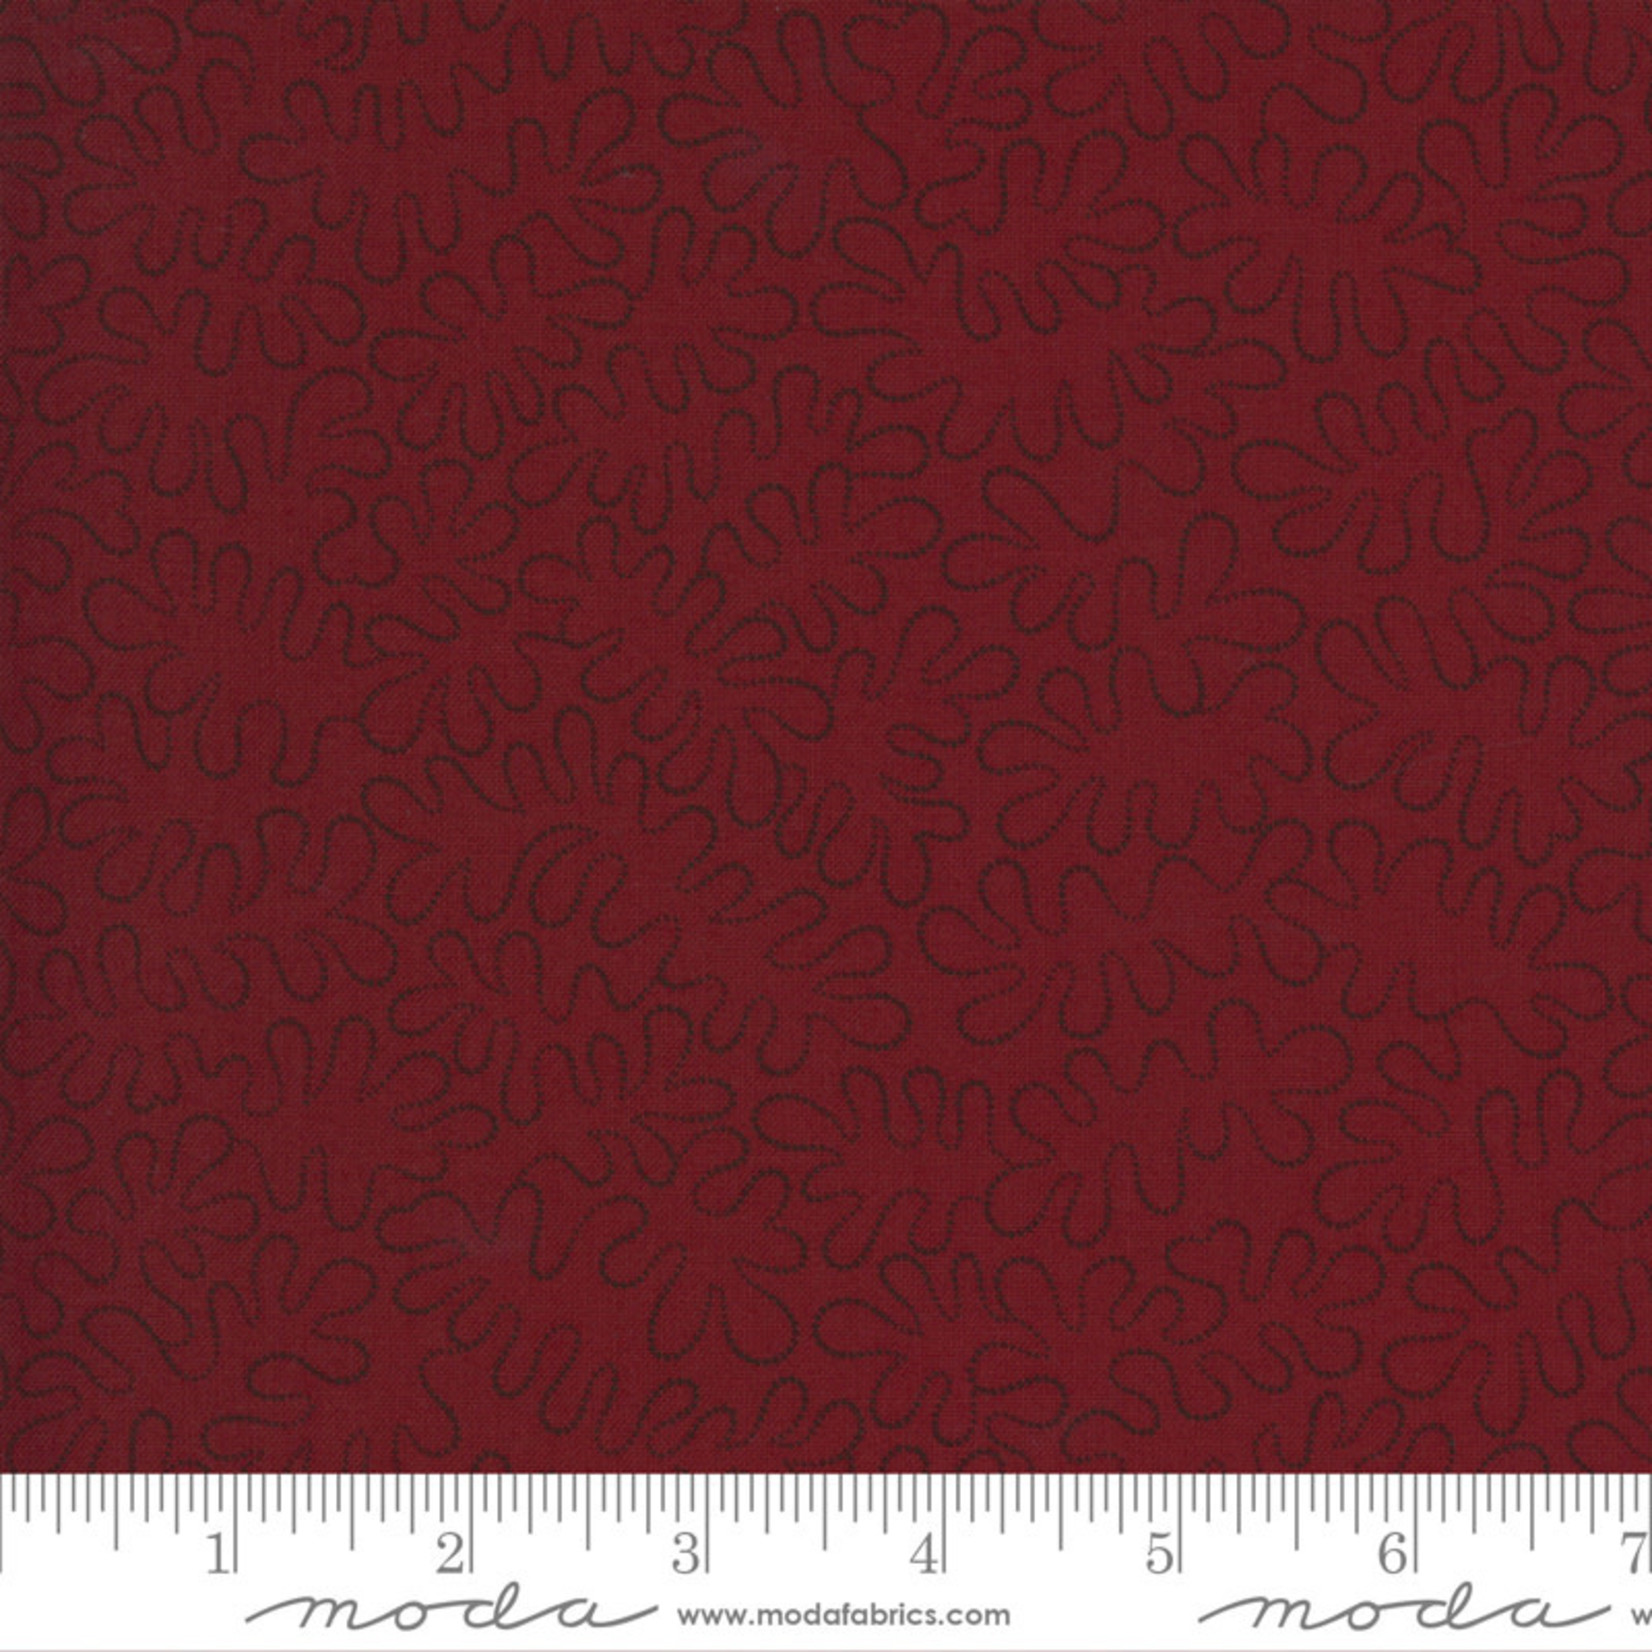 Kansas Troubles Quilters Prairie Dreams, Stone Pathway, Red 9658 13 $0.20 per cm or $20/m